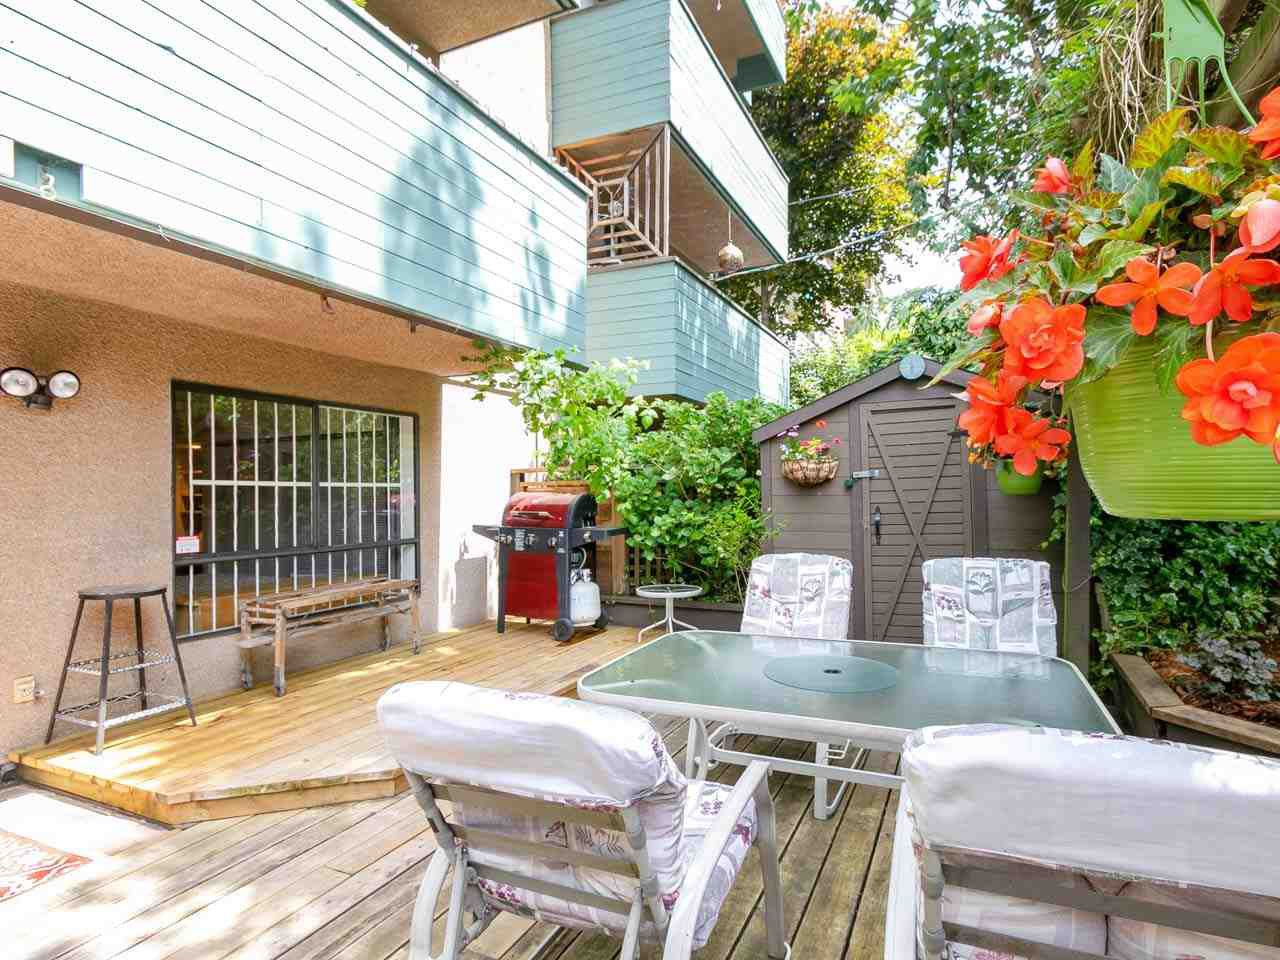 """Photo 2: Photos: 104 1516 CHARLES Street in Vancouver: Grandview VE Condo for sale in """"GARDEN TERRACE"""" (Vancouver East)  : MLS®# R2295886"""